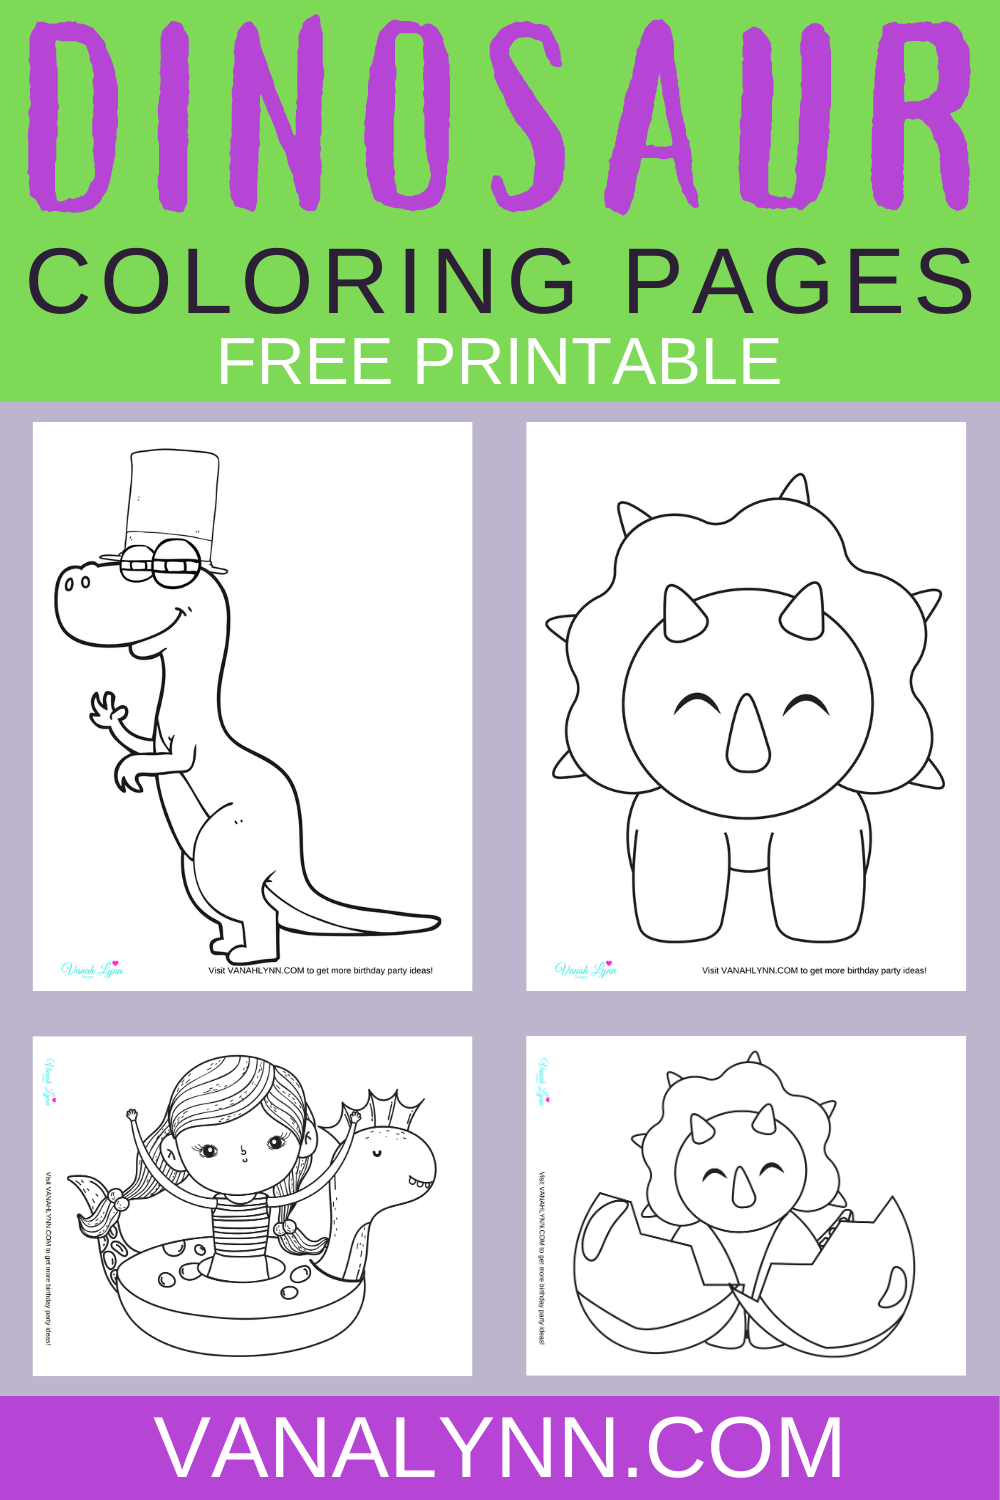 free download: dinosaur coloring pages for birthday party